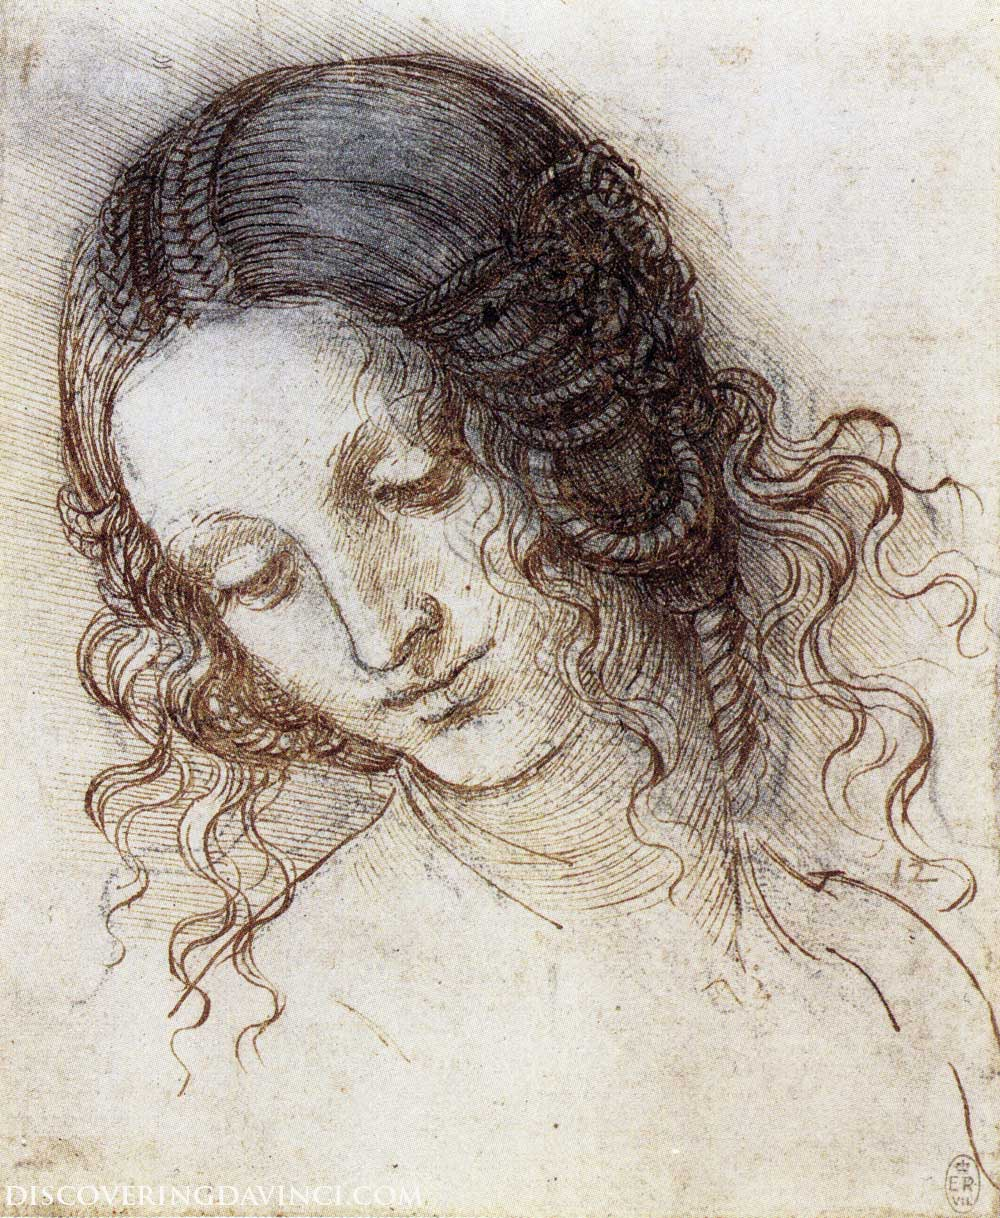 Sketch of A Woman's Face